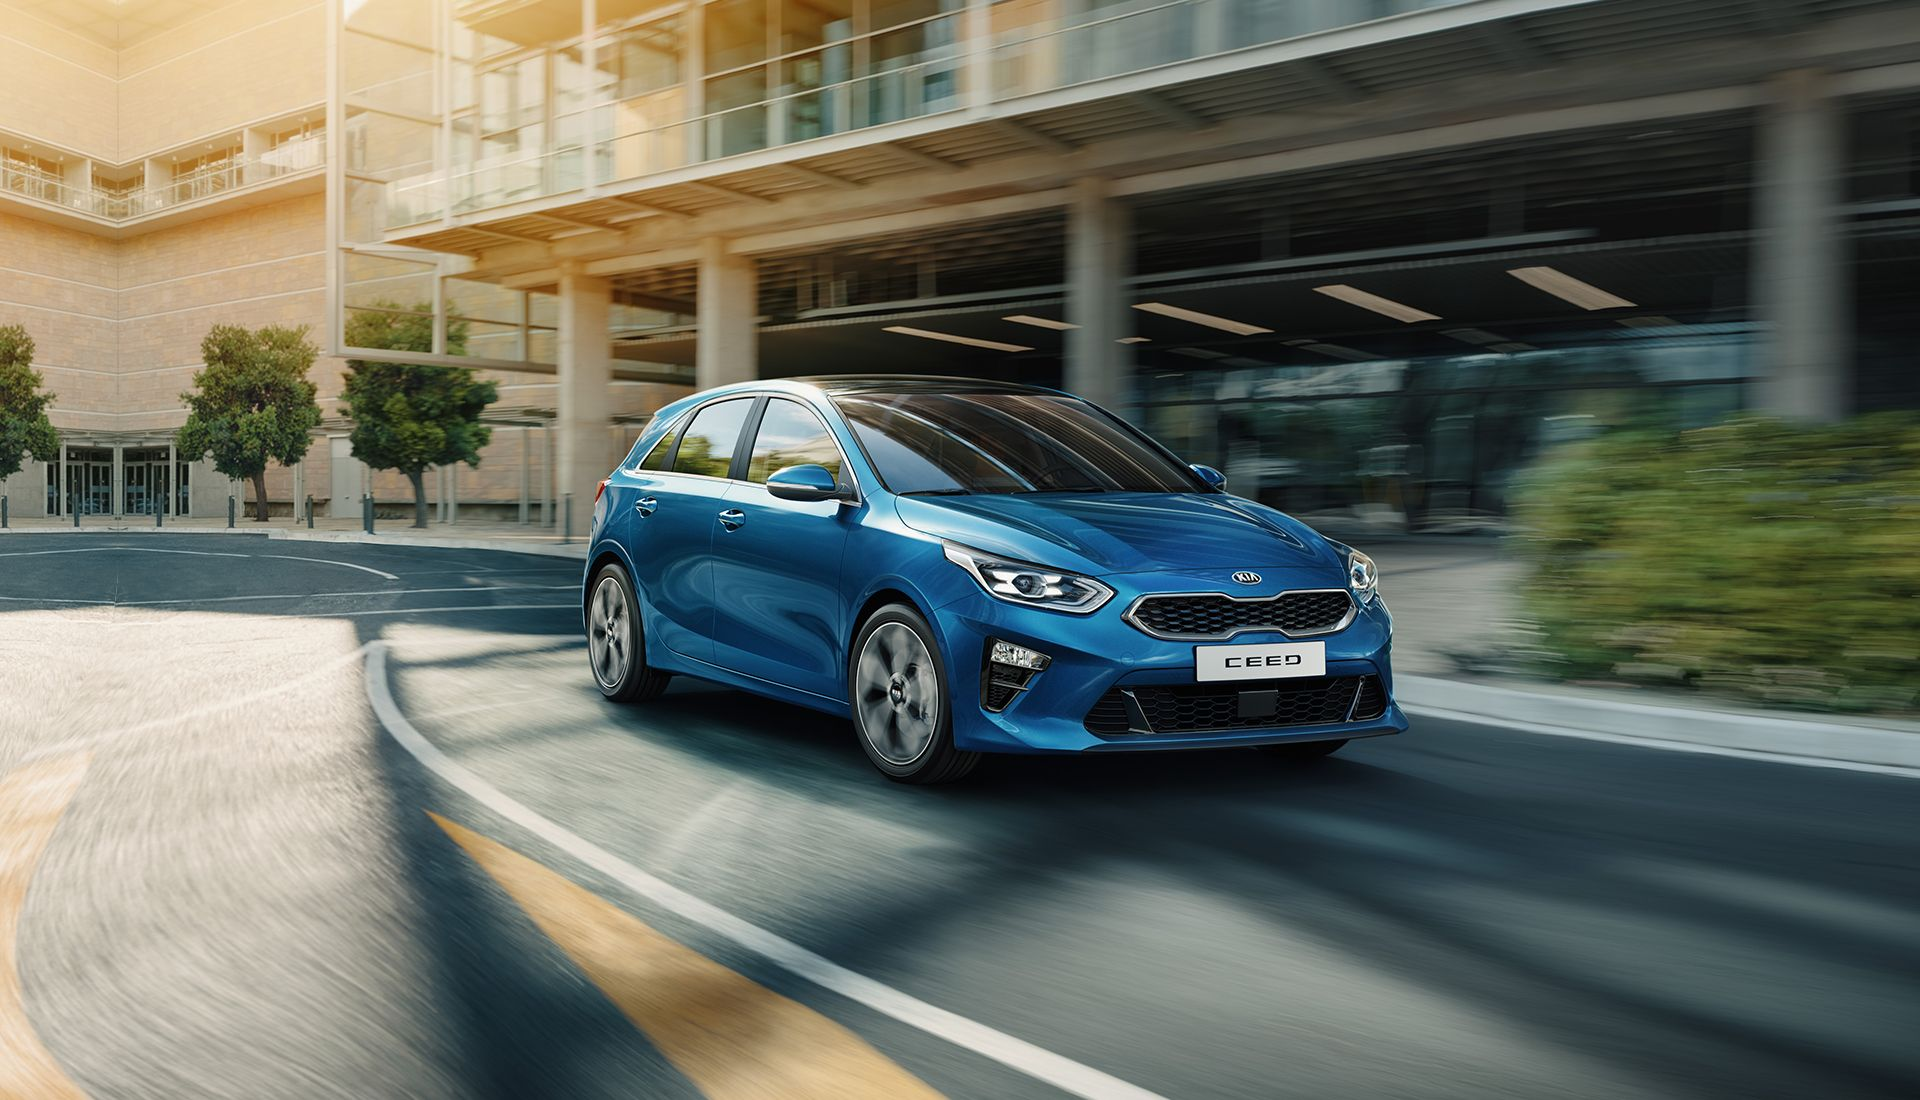 Roving That Family Cars Need Not Compromise On Styling Or Sporting